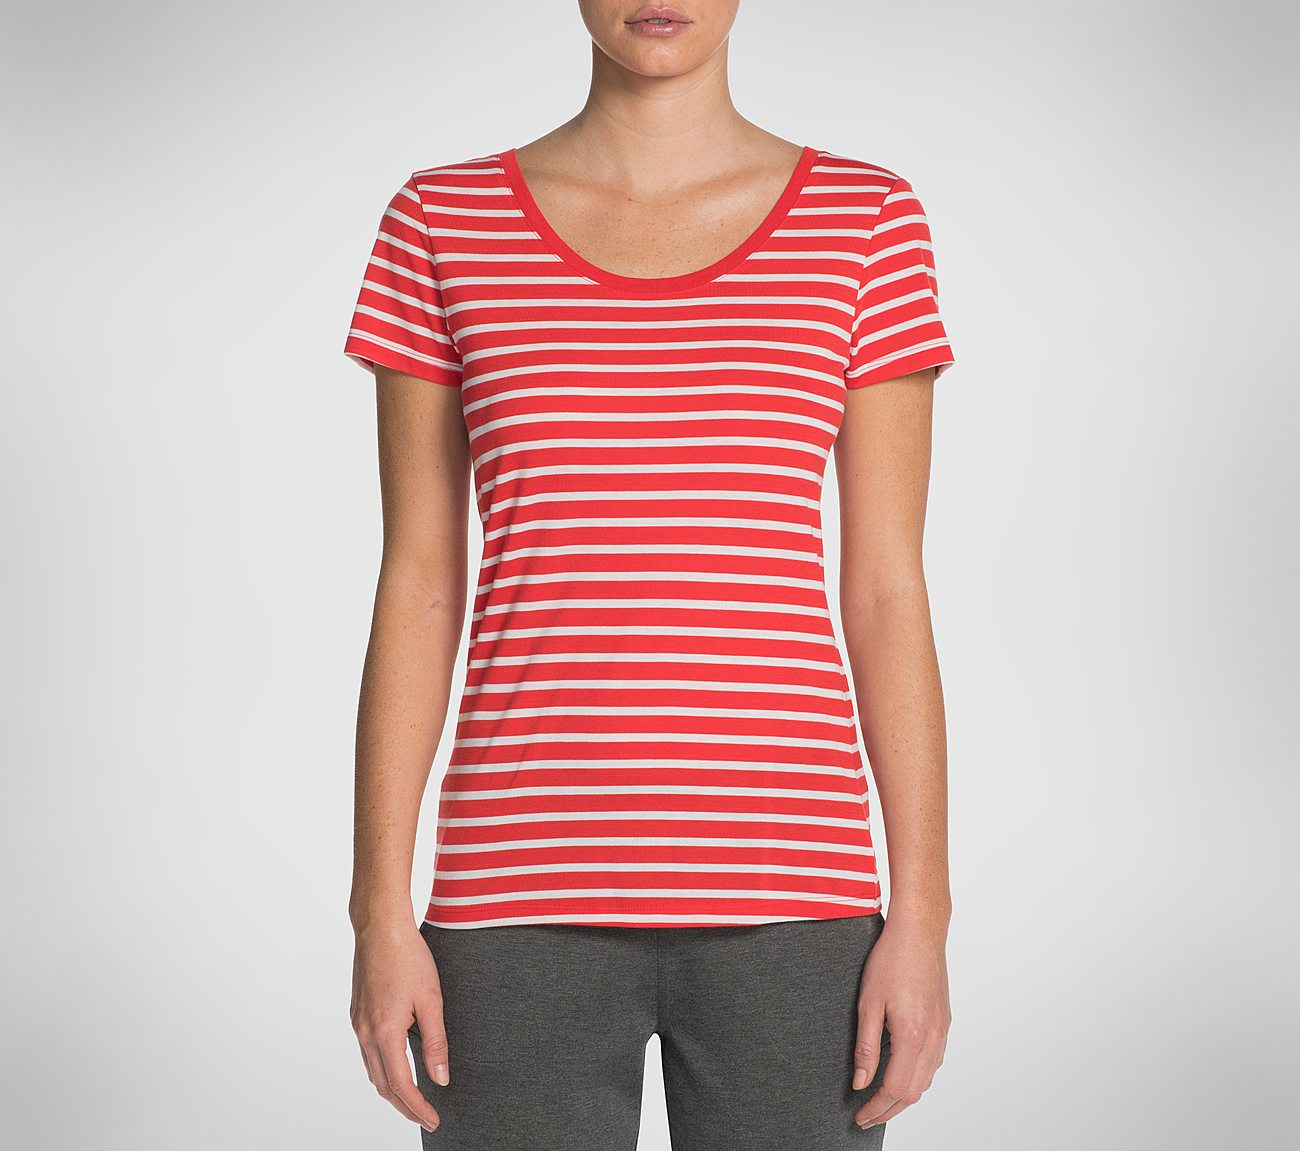 Nautical Striped Tee Shirt